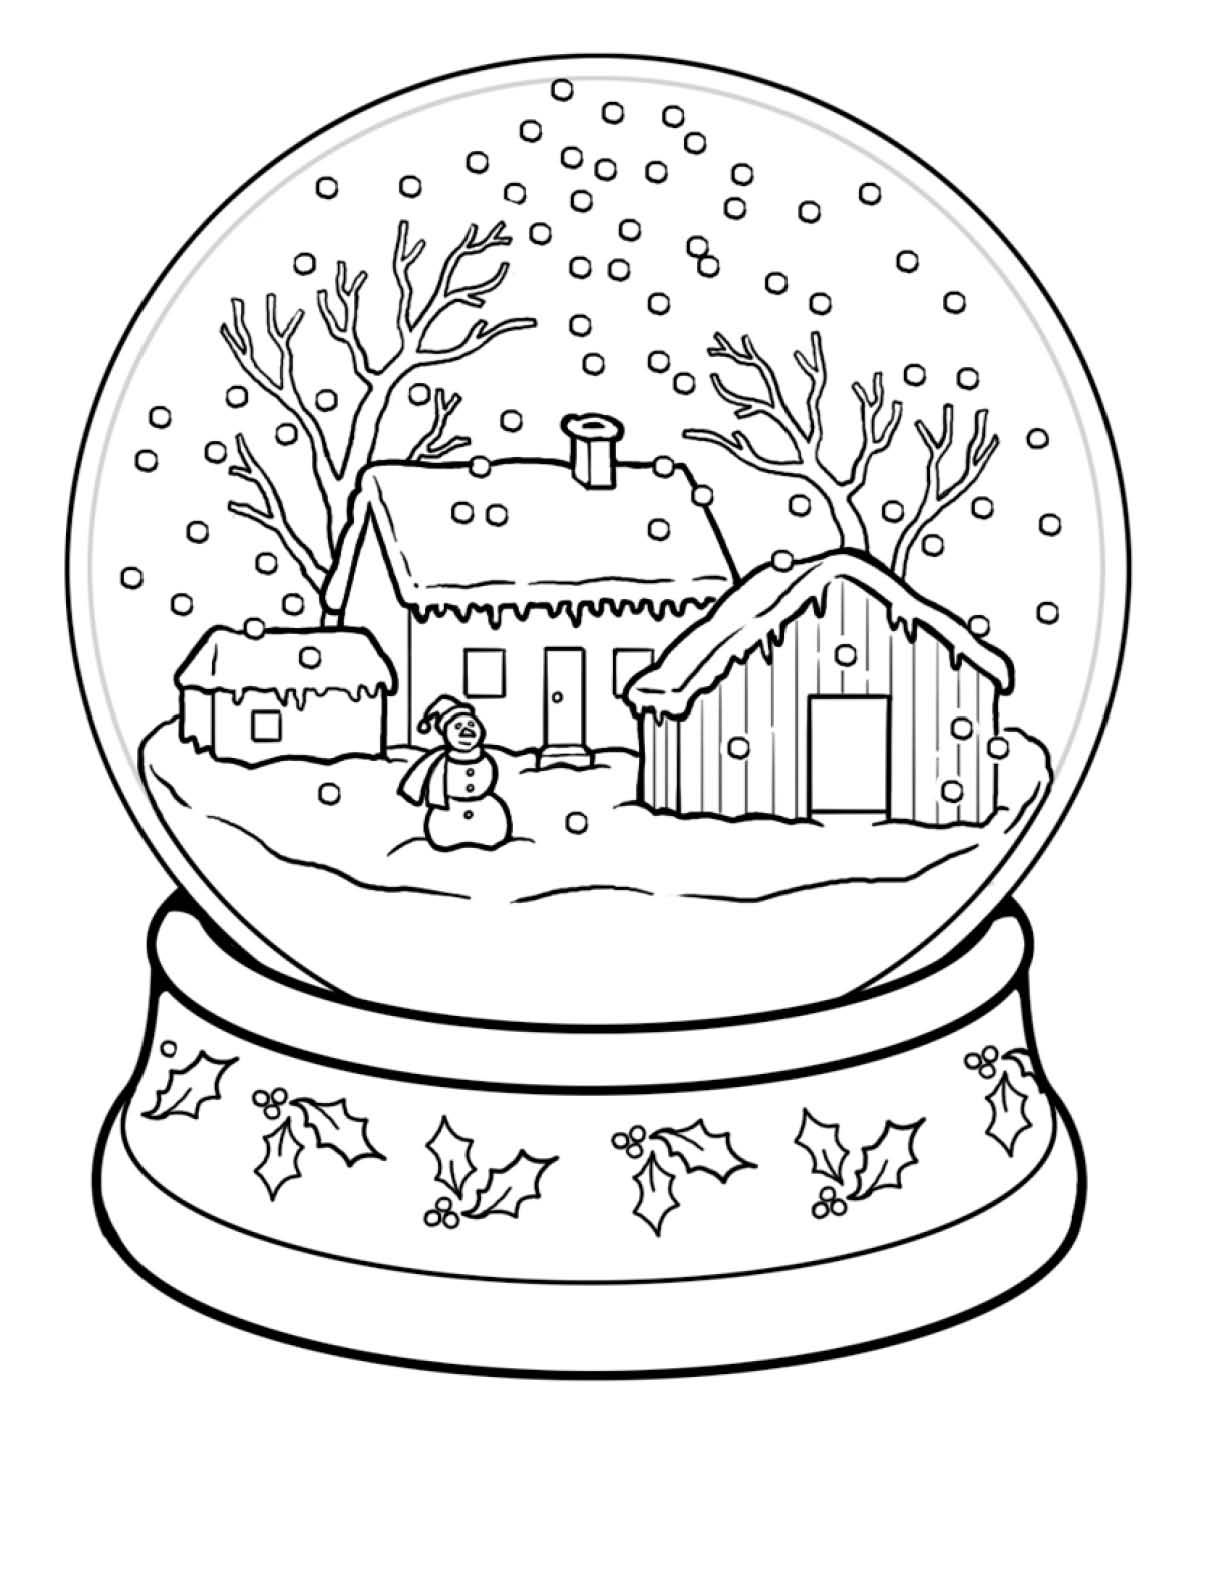 Winter Scenes Coloring Pages Printable Coloring Pages Winter Christmas Coloring Pages Holiday Worksheets